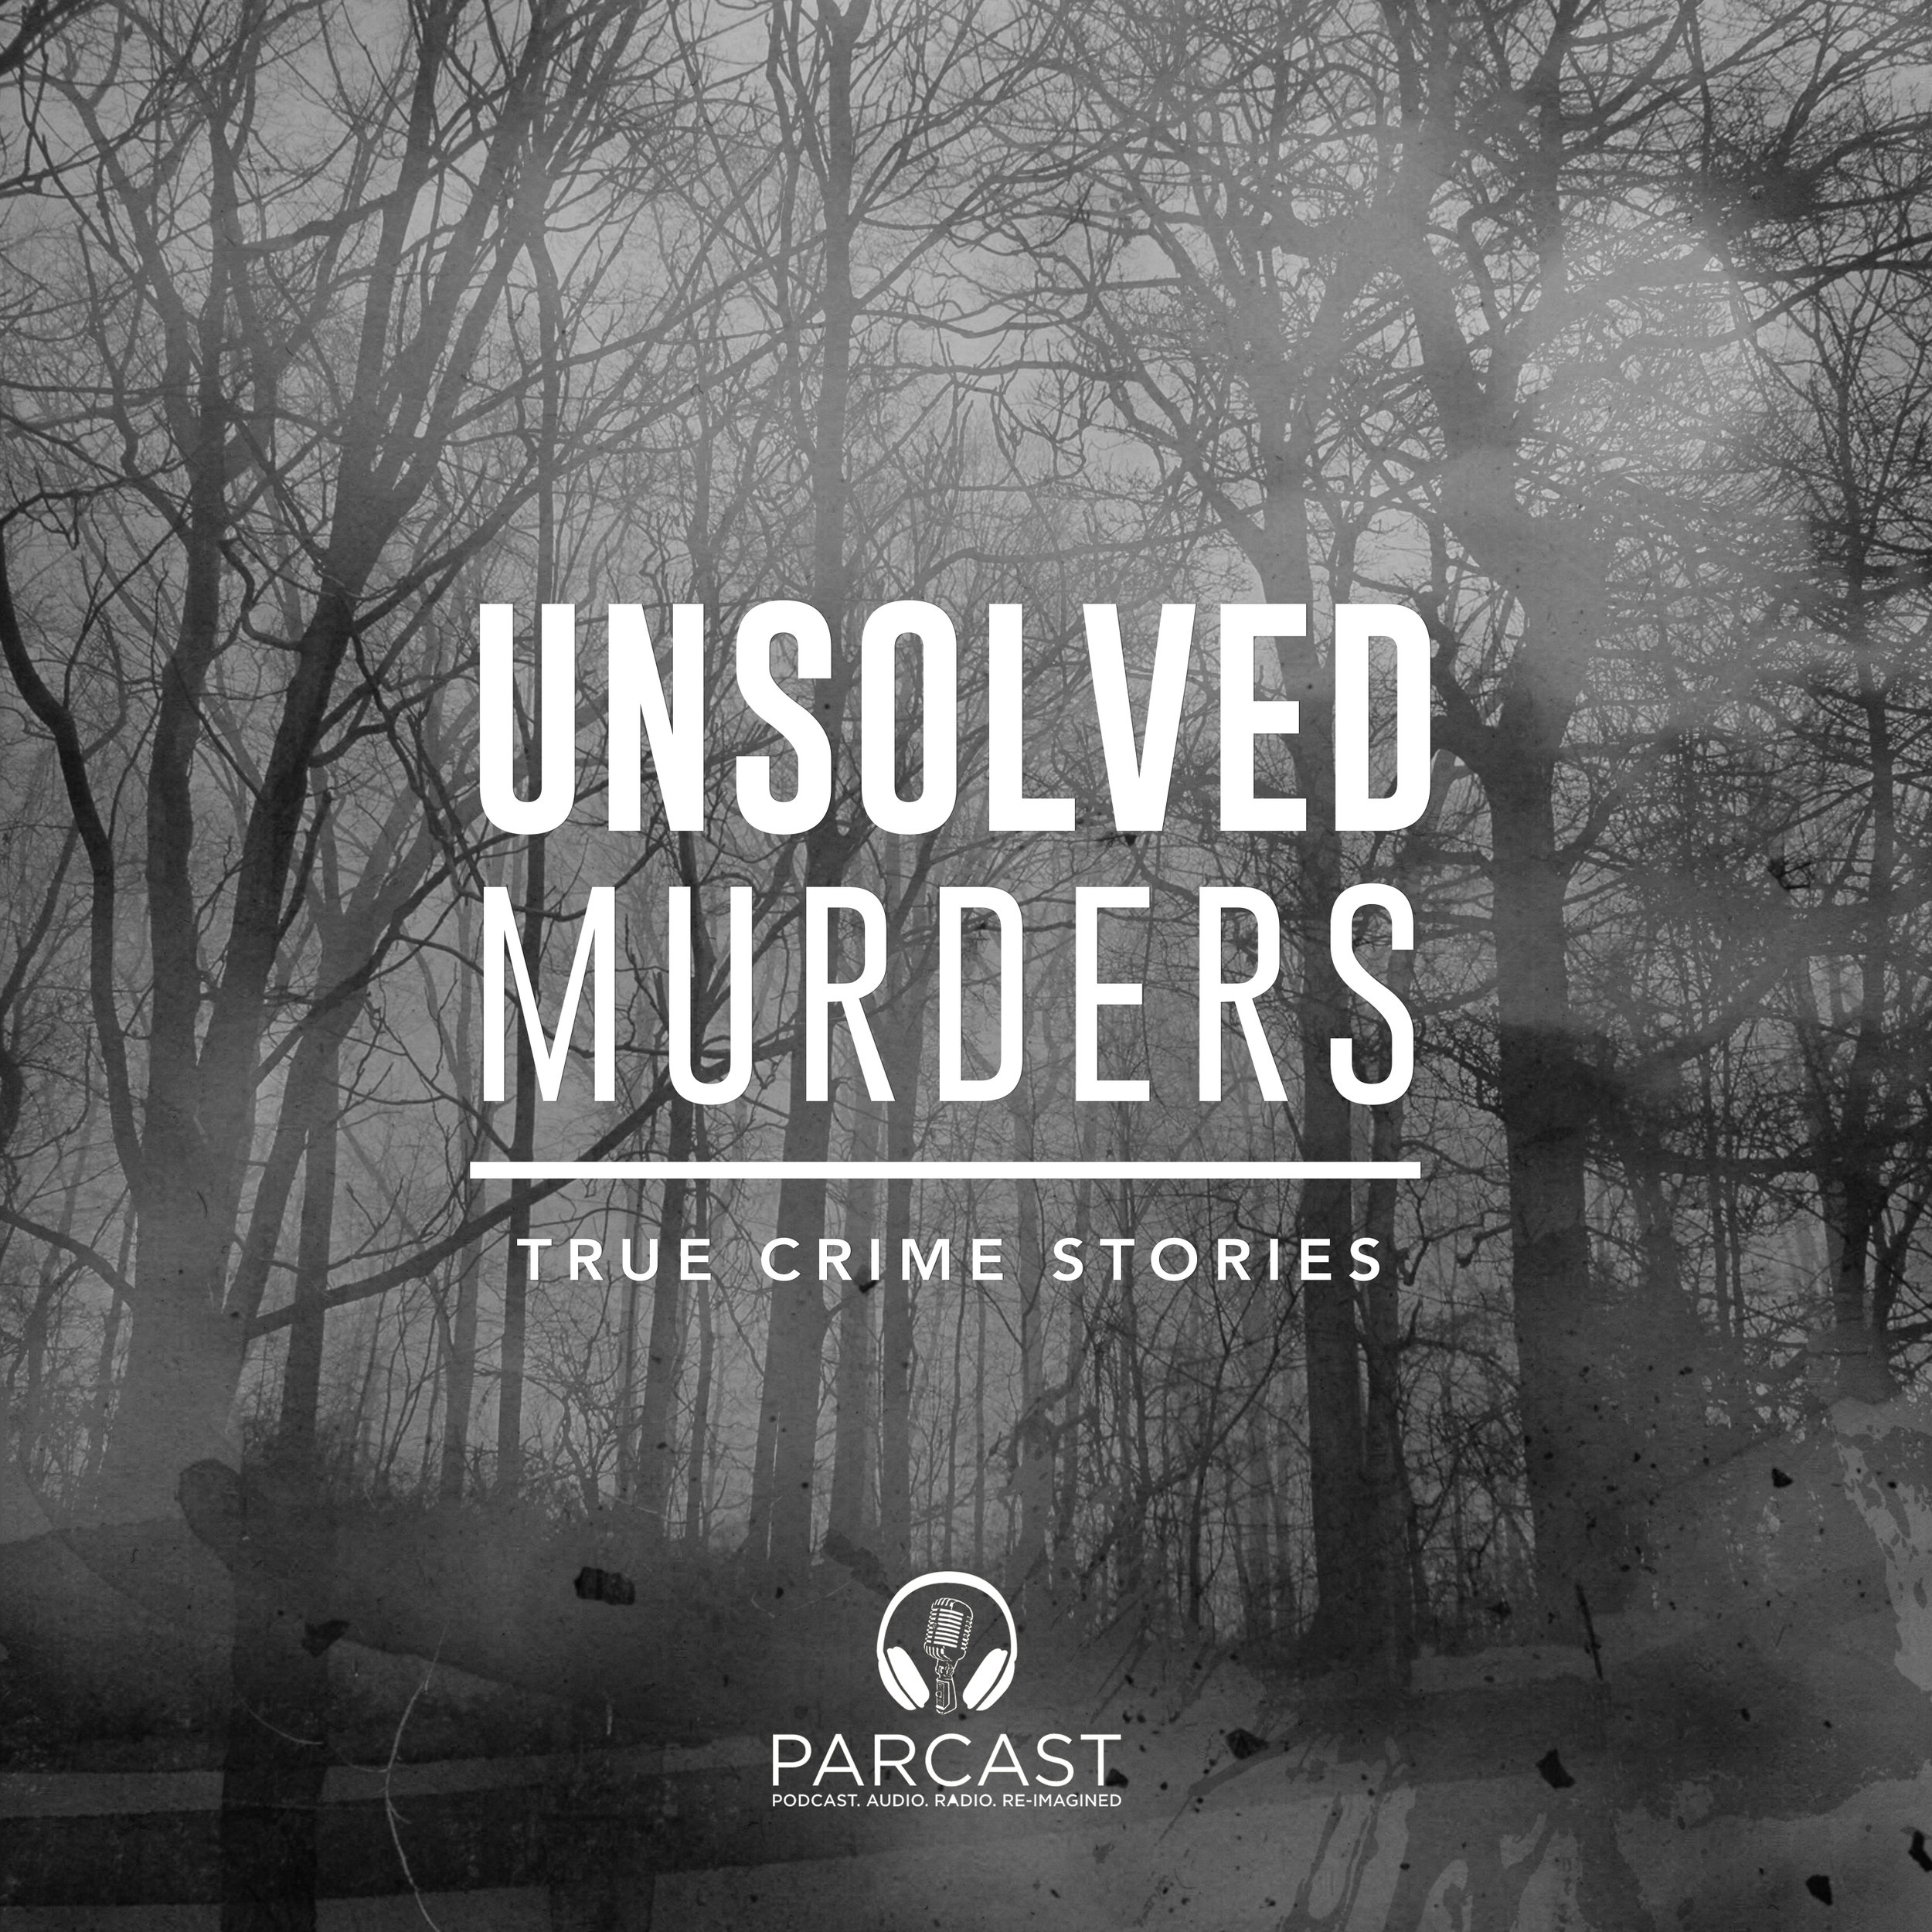 Unsolved Murders_artwork (1).jpg